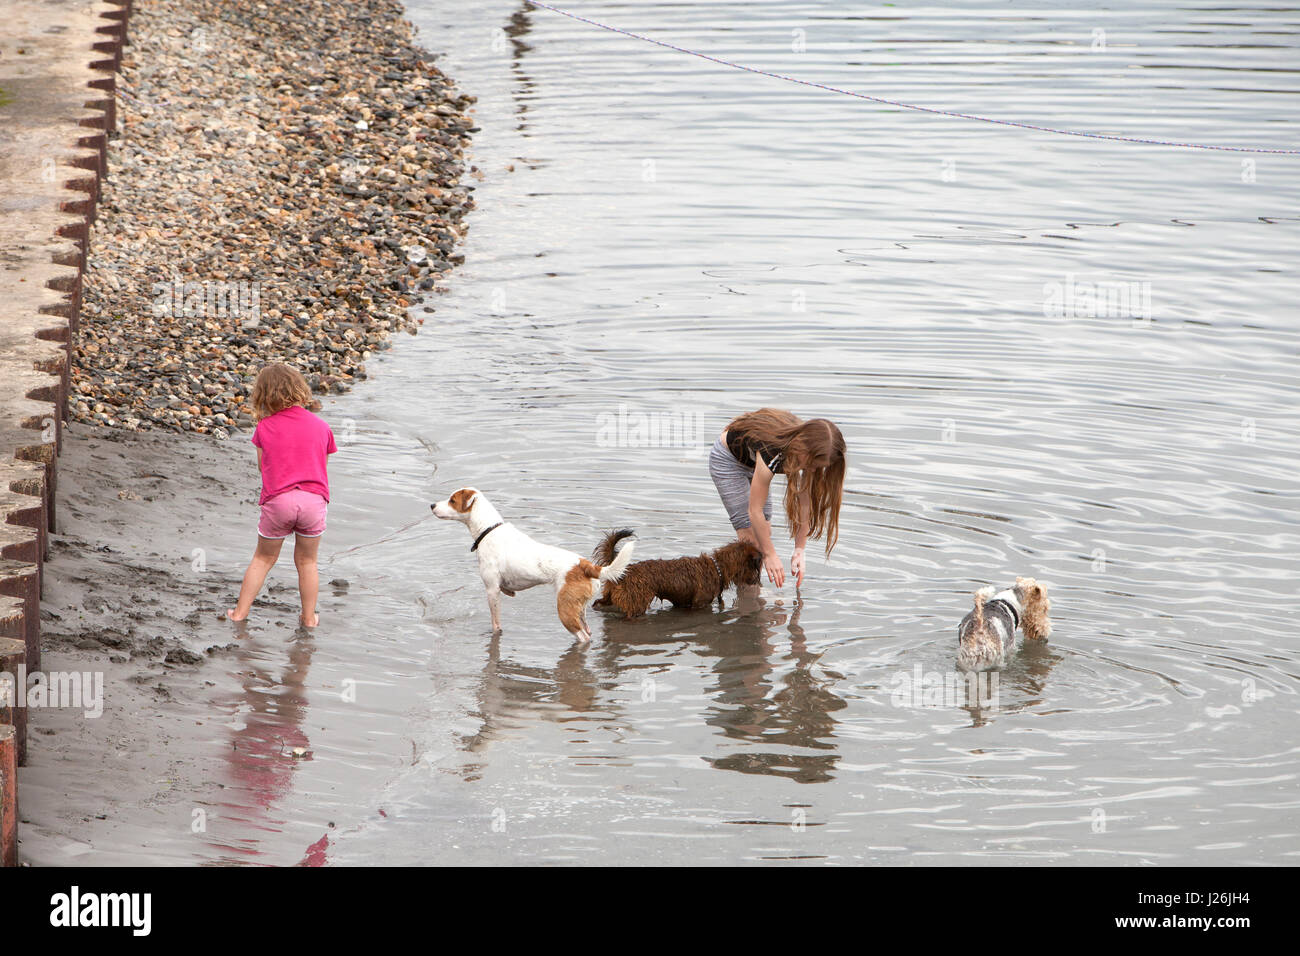 Two young girls play with three small dogs at the edge of the water in Porthleven Harbour, Cornwall. - Stock Image